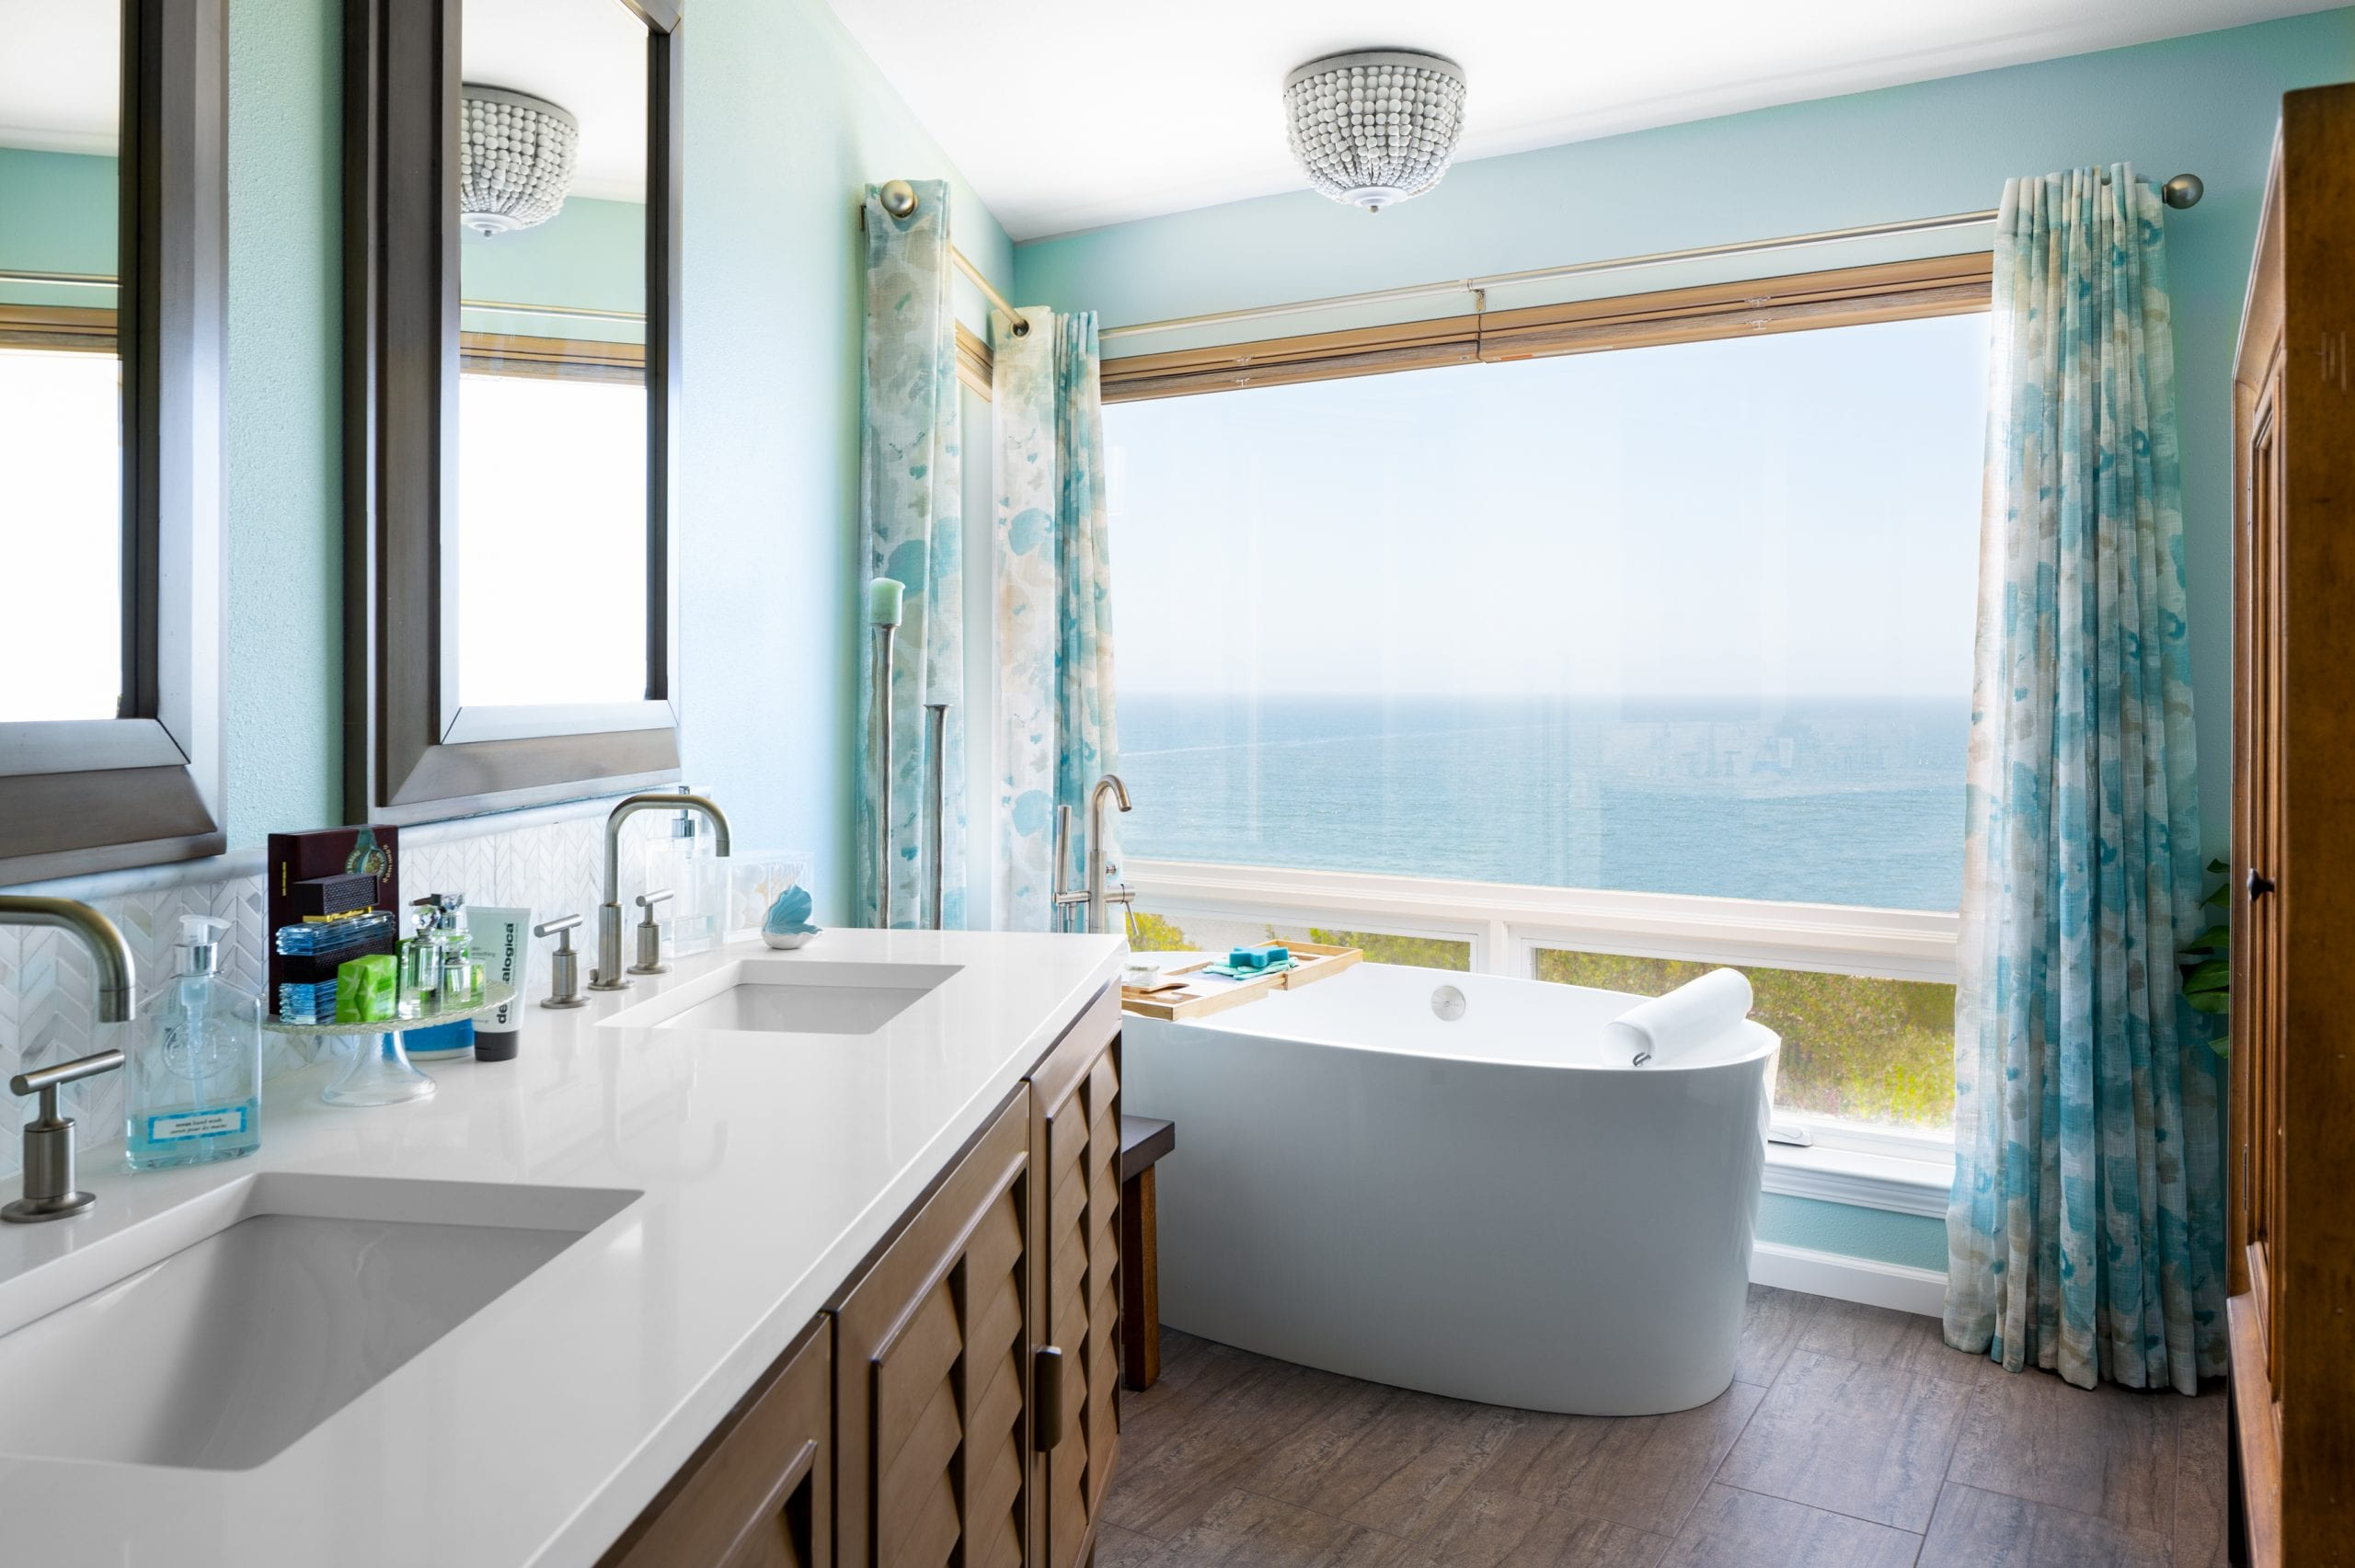 Stand alone tub with window view of the ocean